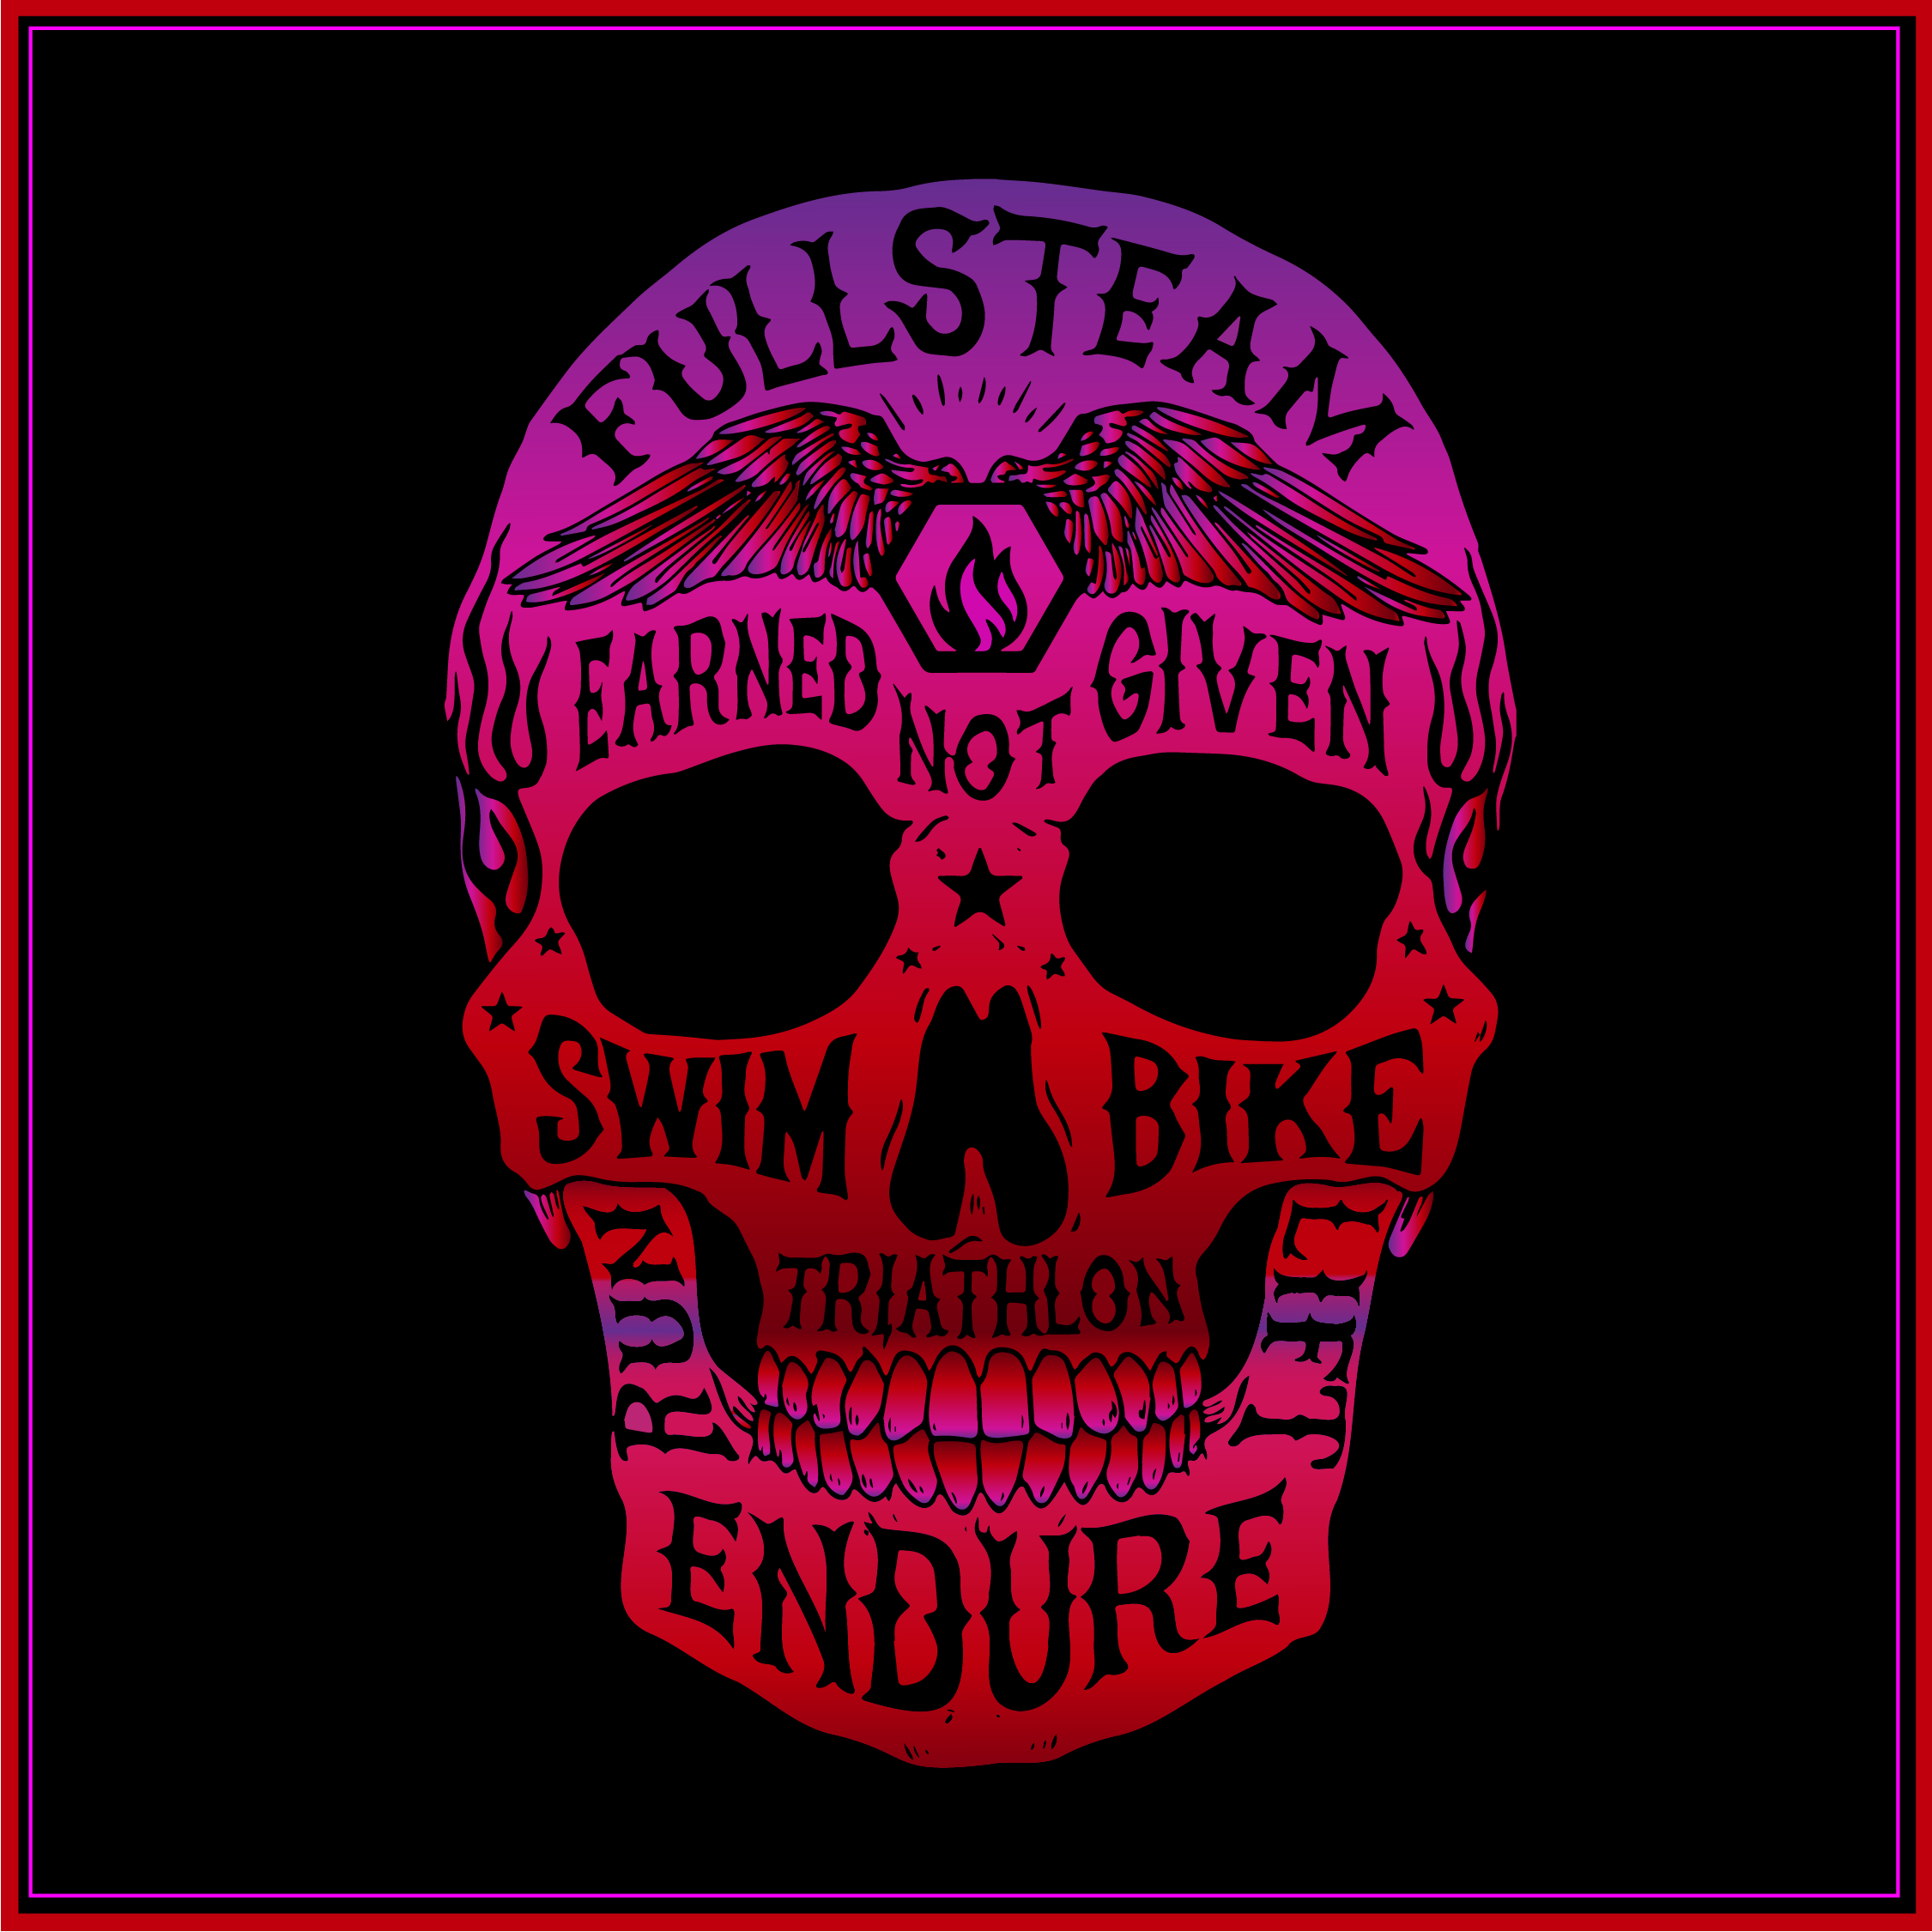 Fullsteam Endure Vest